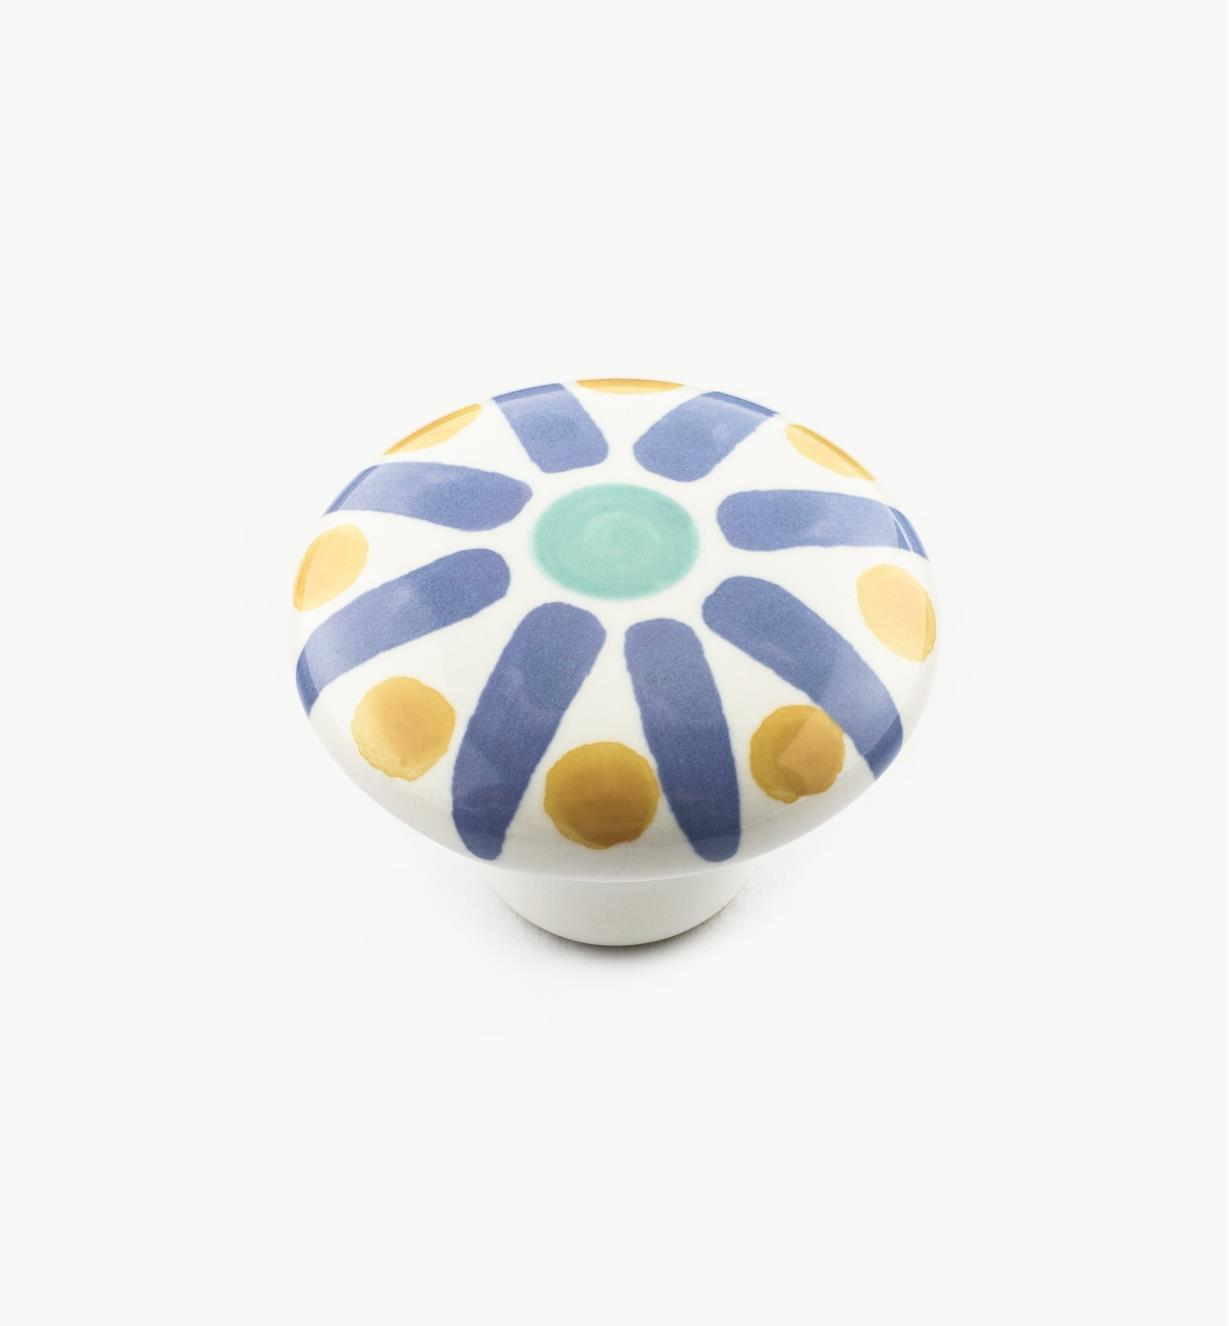 01W3101 - Blue Sunburst Knob